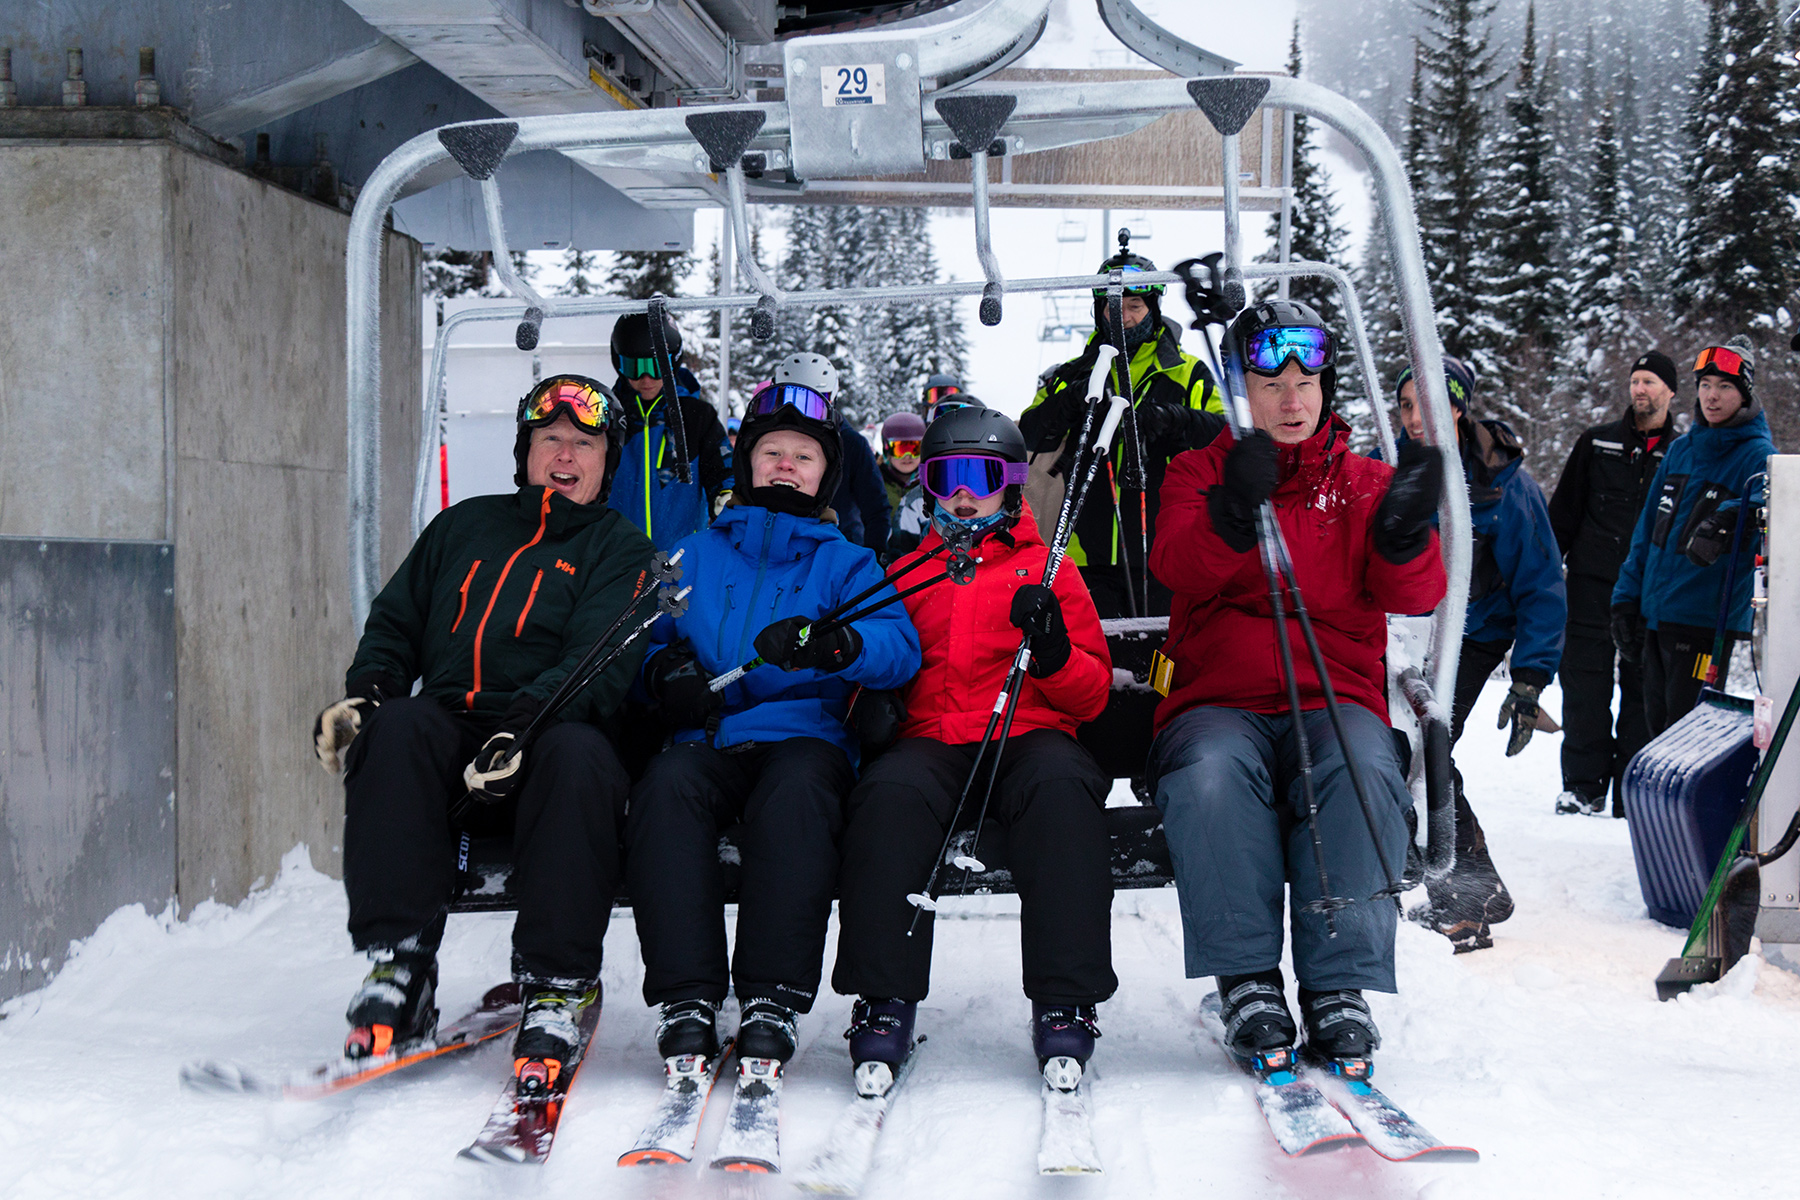 Guests on the Orient Chairlift